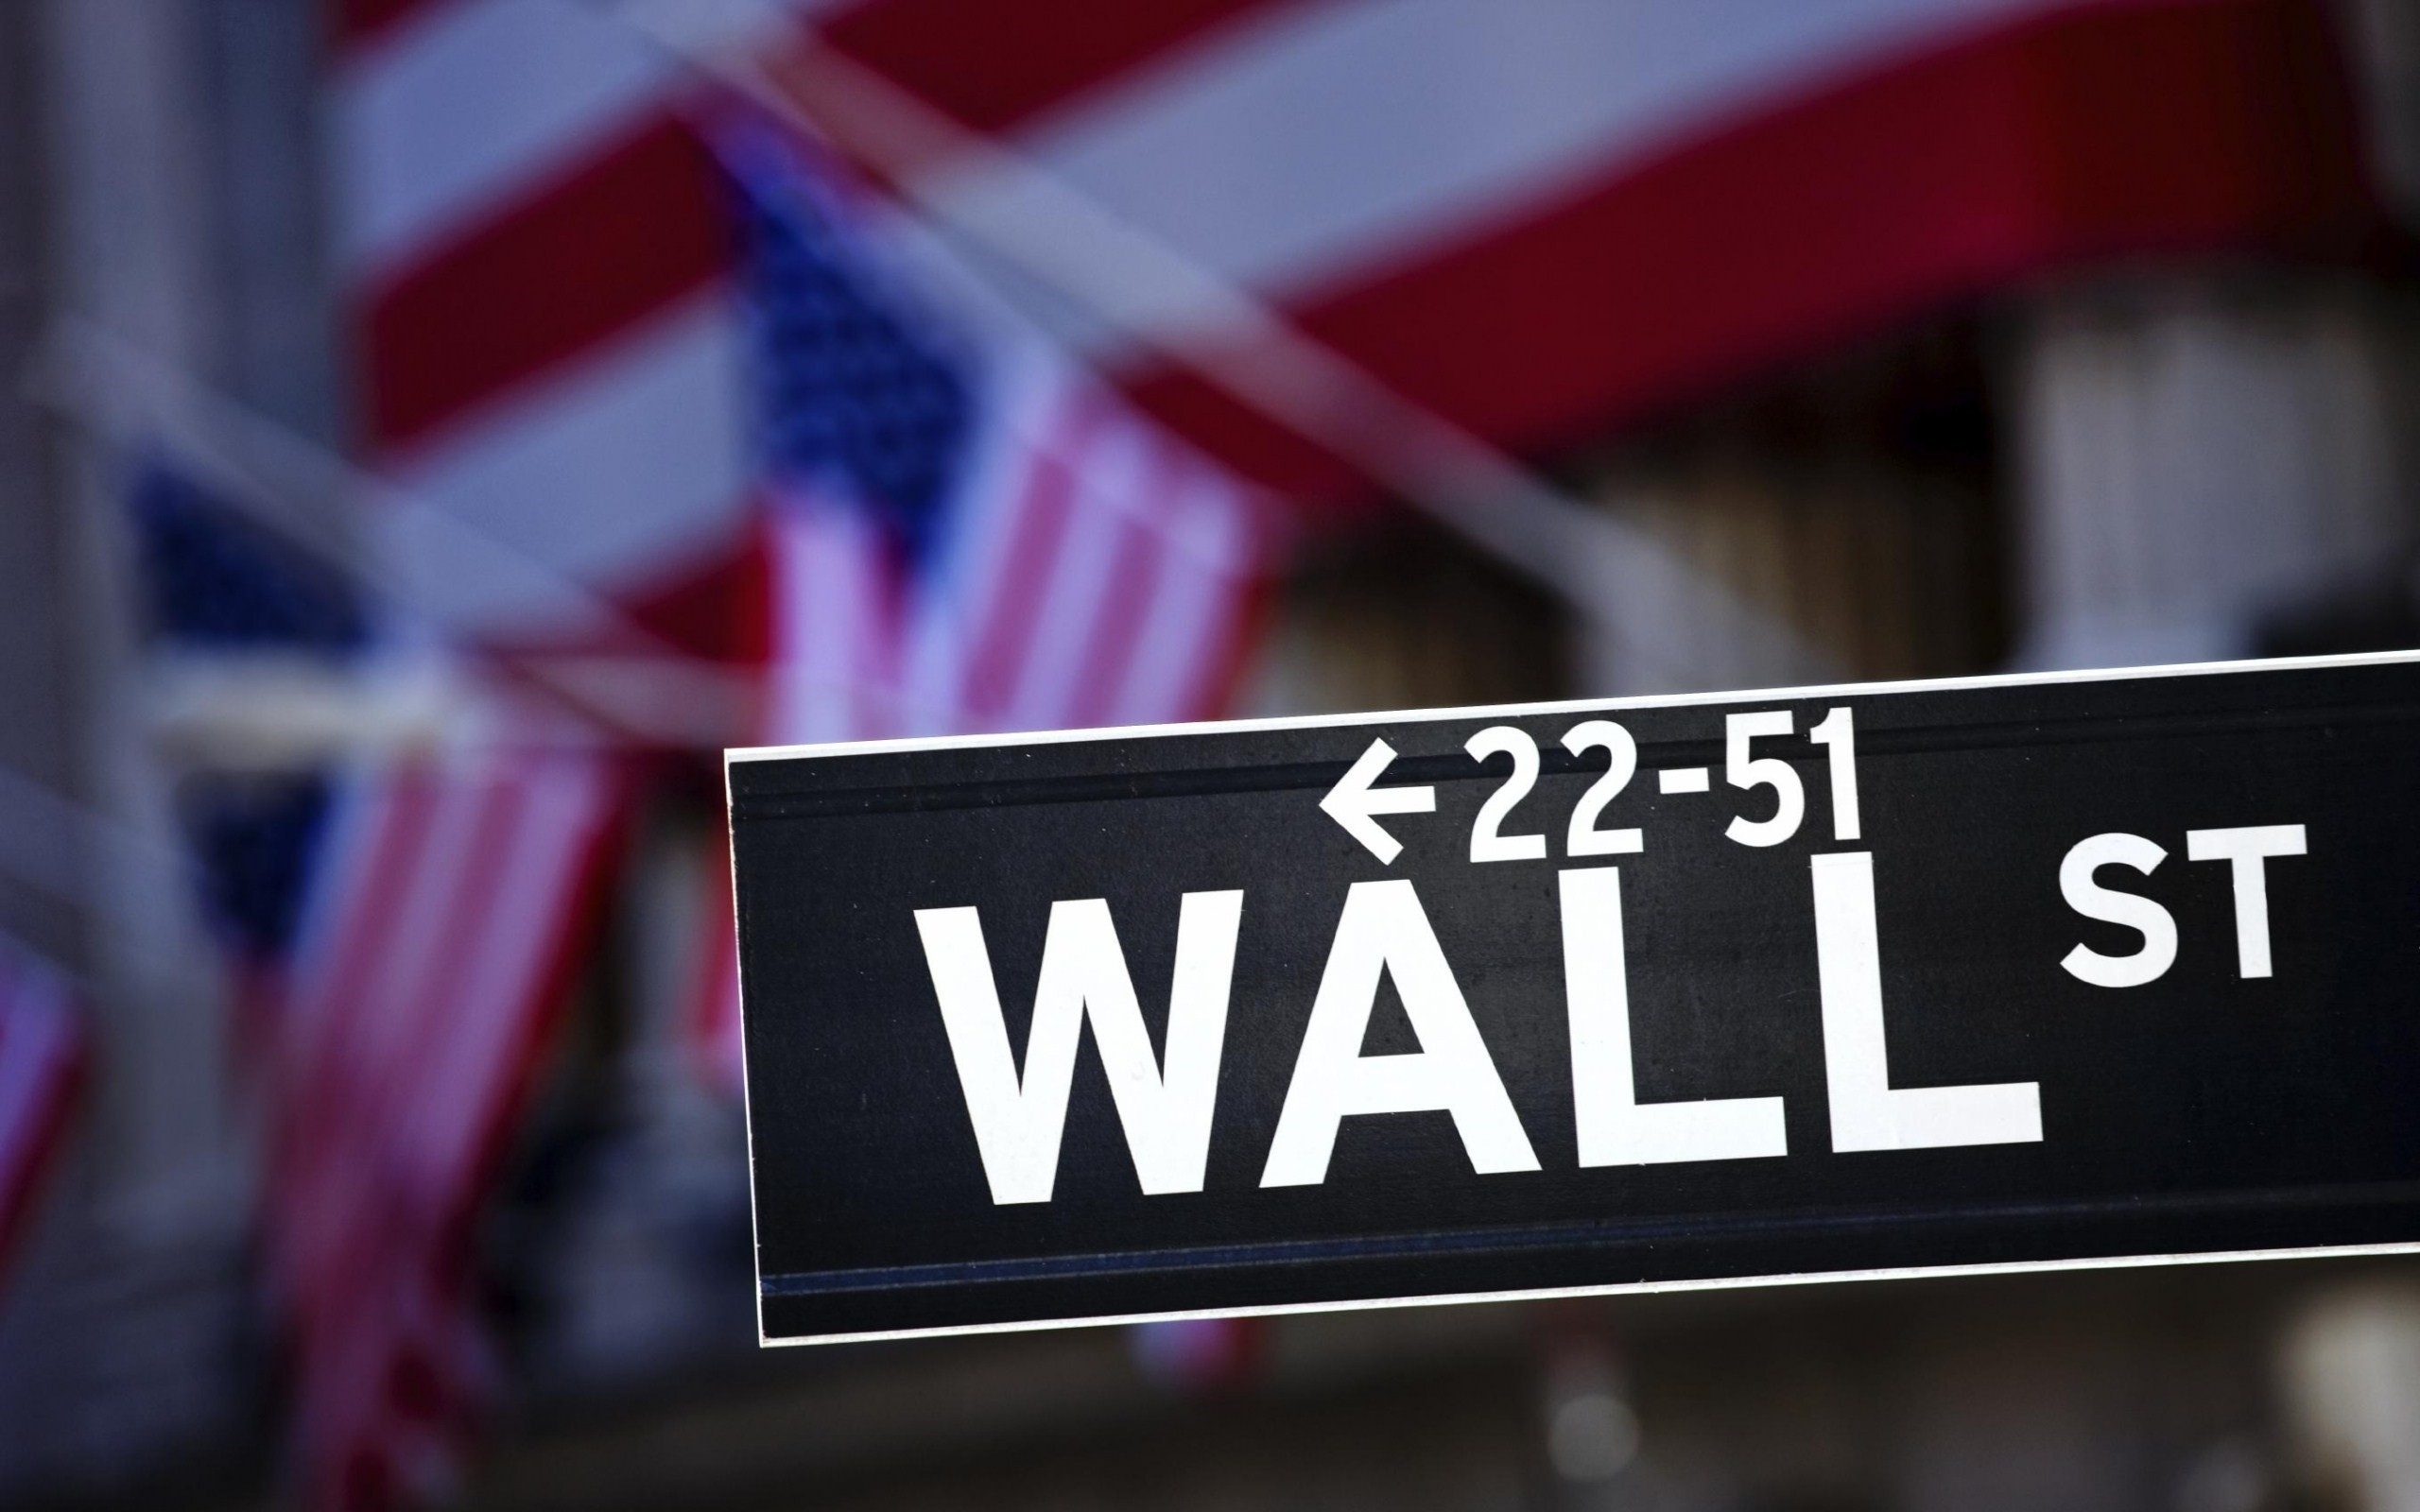 2560x1600 HD Wall Street Wallpaper 24182